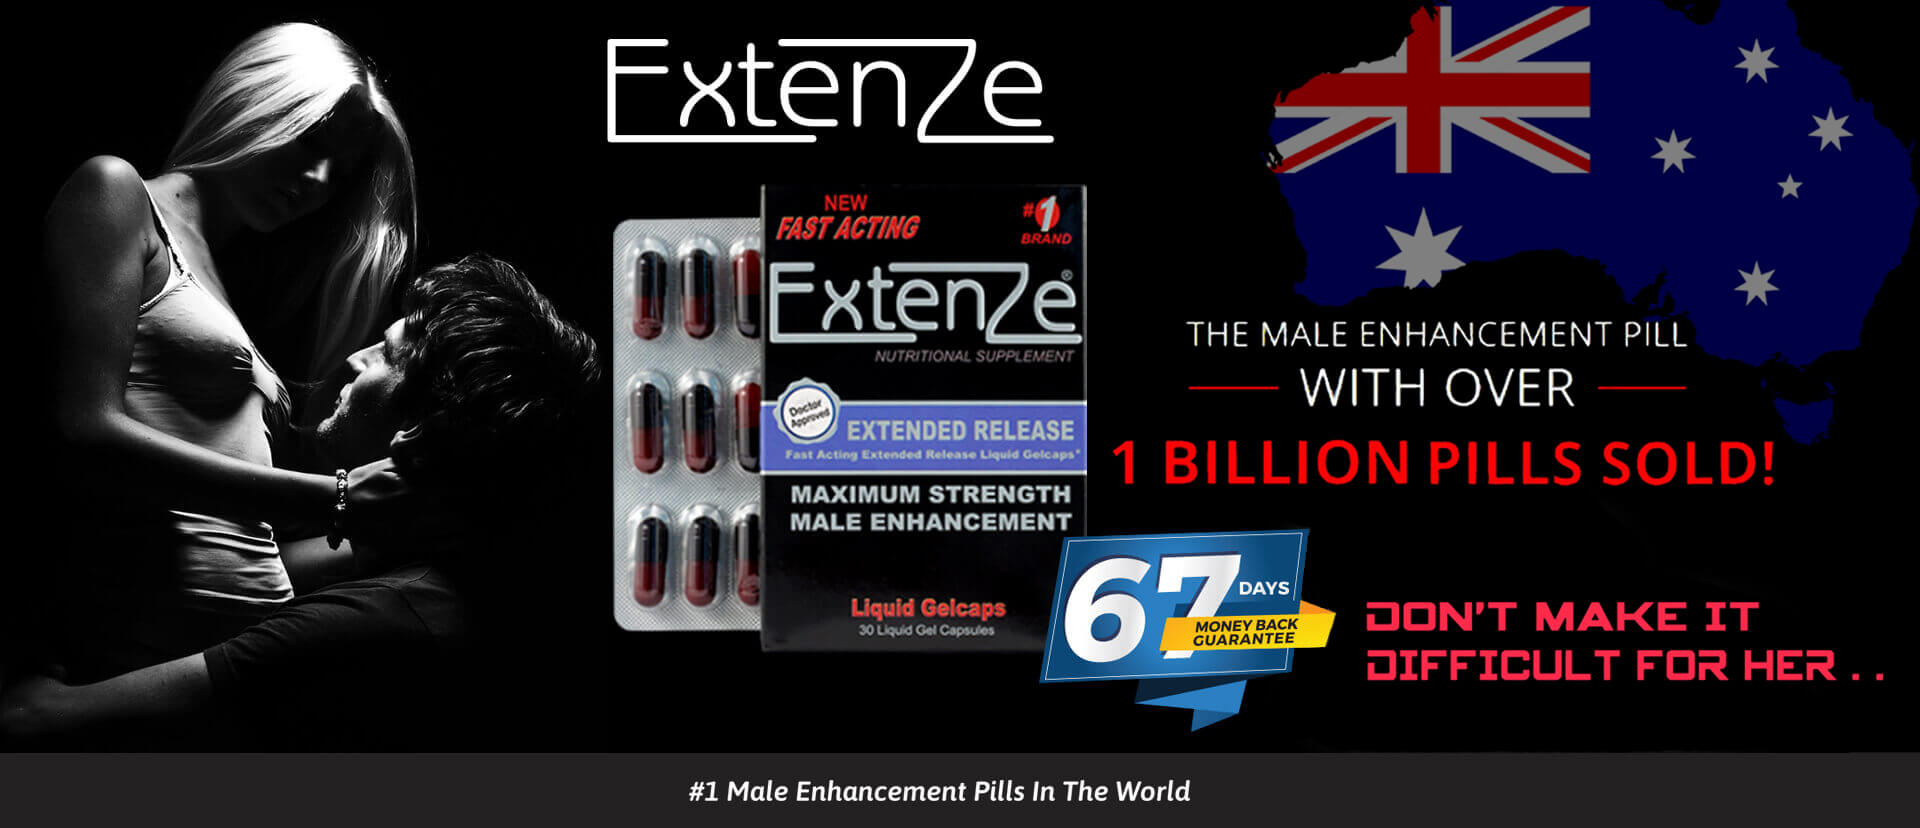 What Happens If You Use Extenze And Libdomax